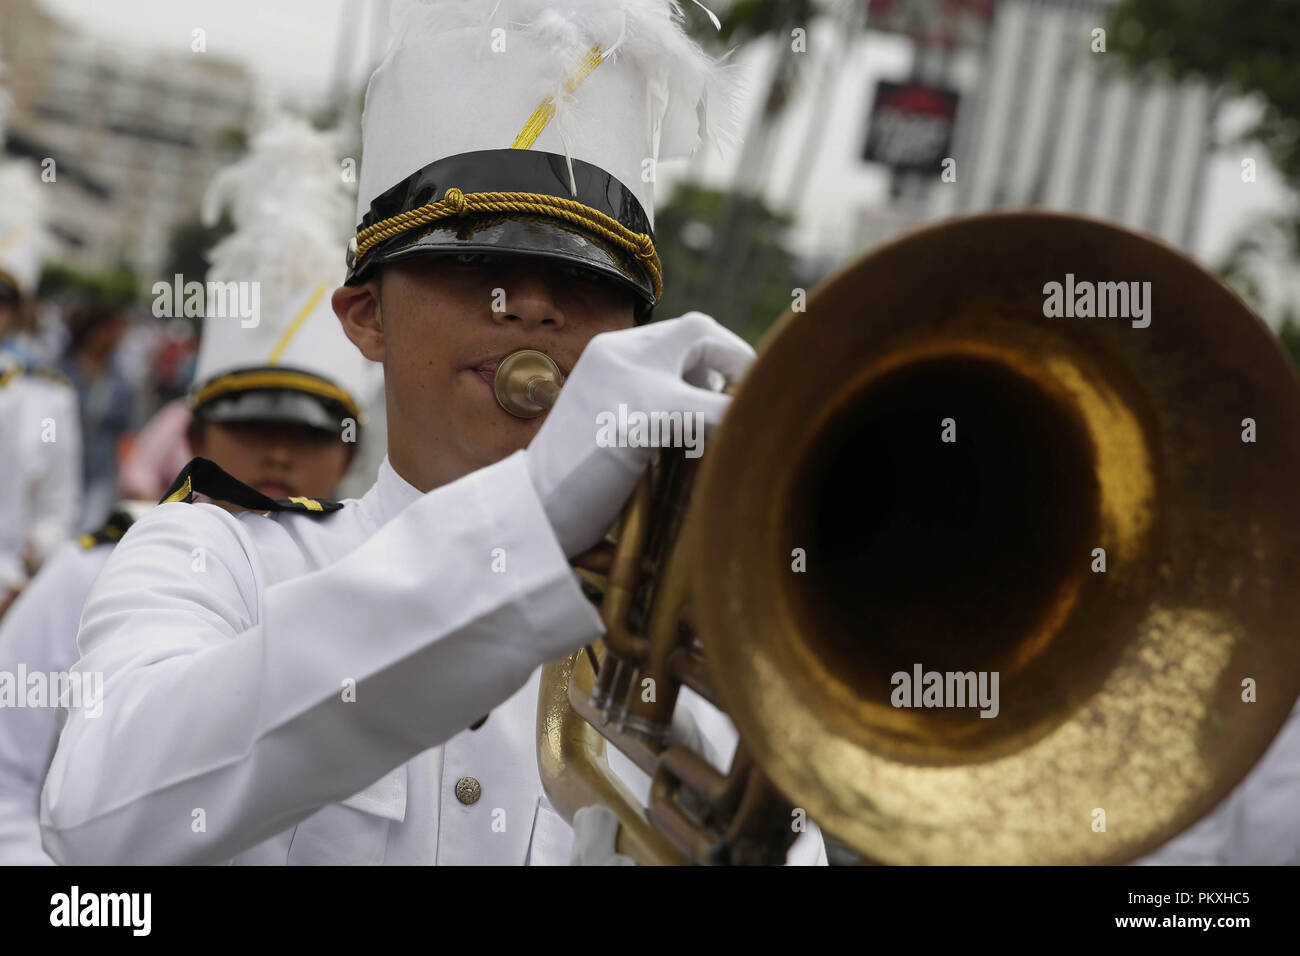 San Salvador, El Salvador. 15th Sep, 2018. Thousands of students celebrate with 'patriotic fervor' the 197th anniversary of the independence of El Salvador from Spain, a European country that currently maintains a close relationship with the region, in San Salvador, El Salvador, on 15 September 2018. Accompanied by musical bands, students offered folk dances, gymnastics and other exhibits to the attendees who arrived at the stadium carrying flags and other objects alluding to the date. Credit: Rodrigo Sura/EFE/Alamy Live News - Stock Image